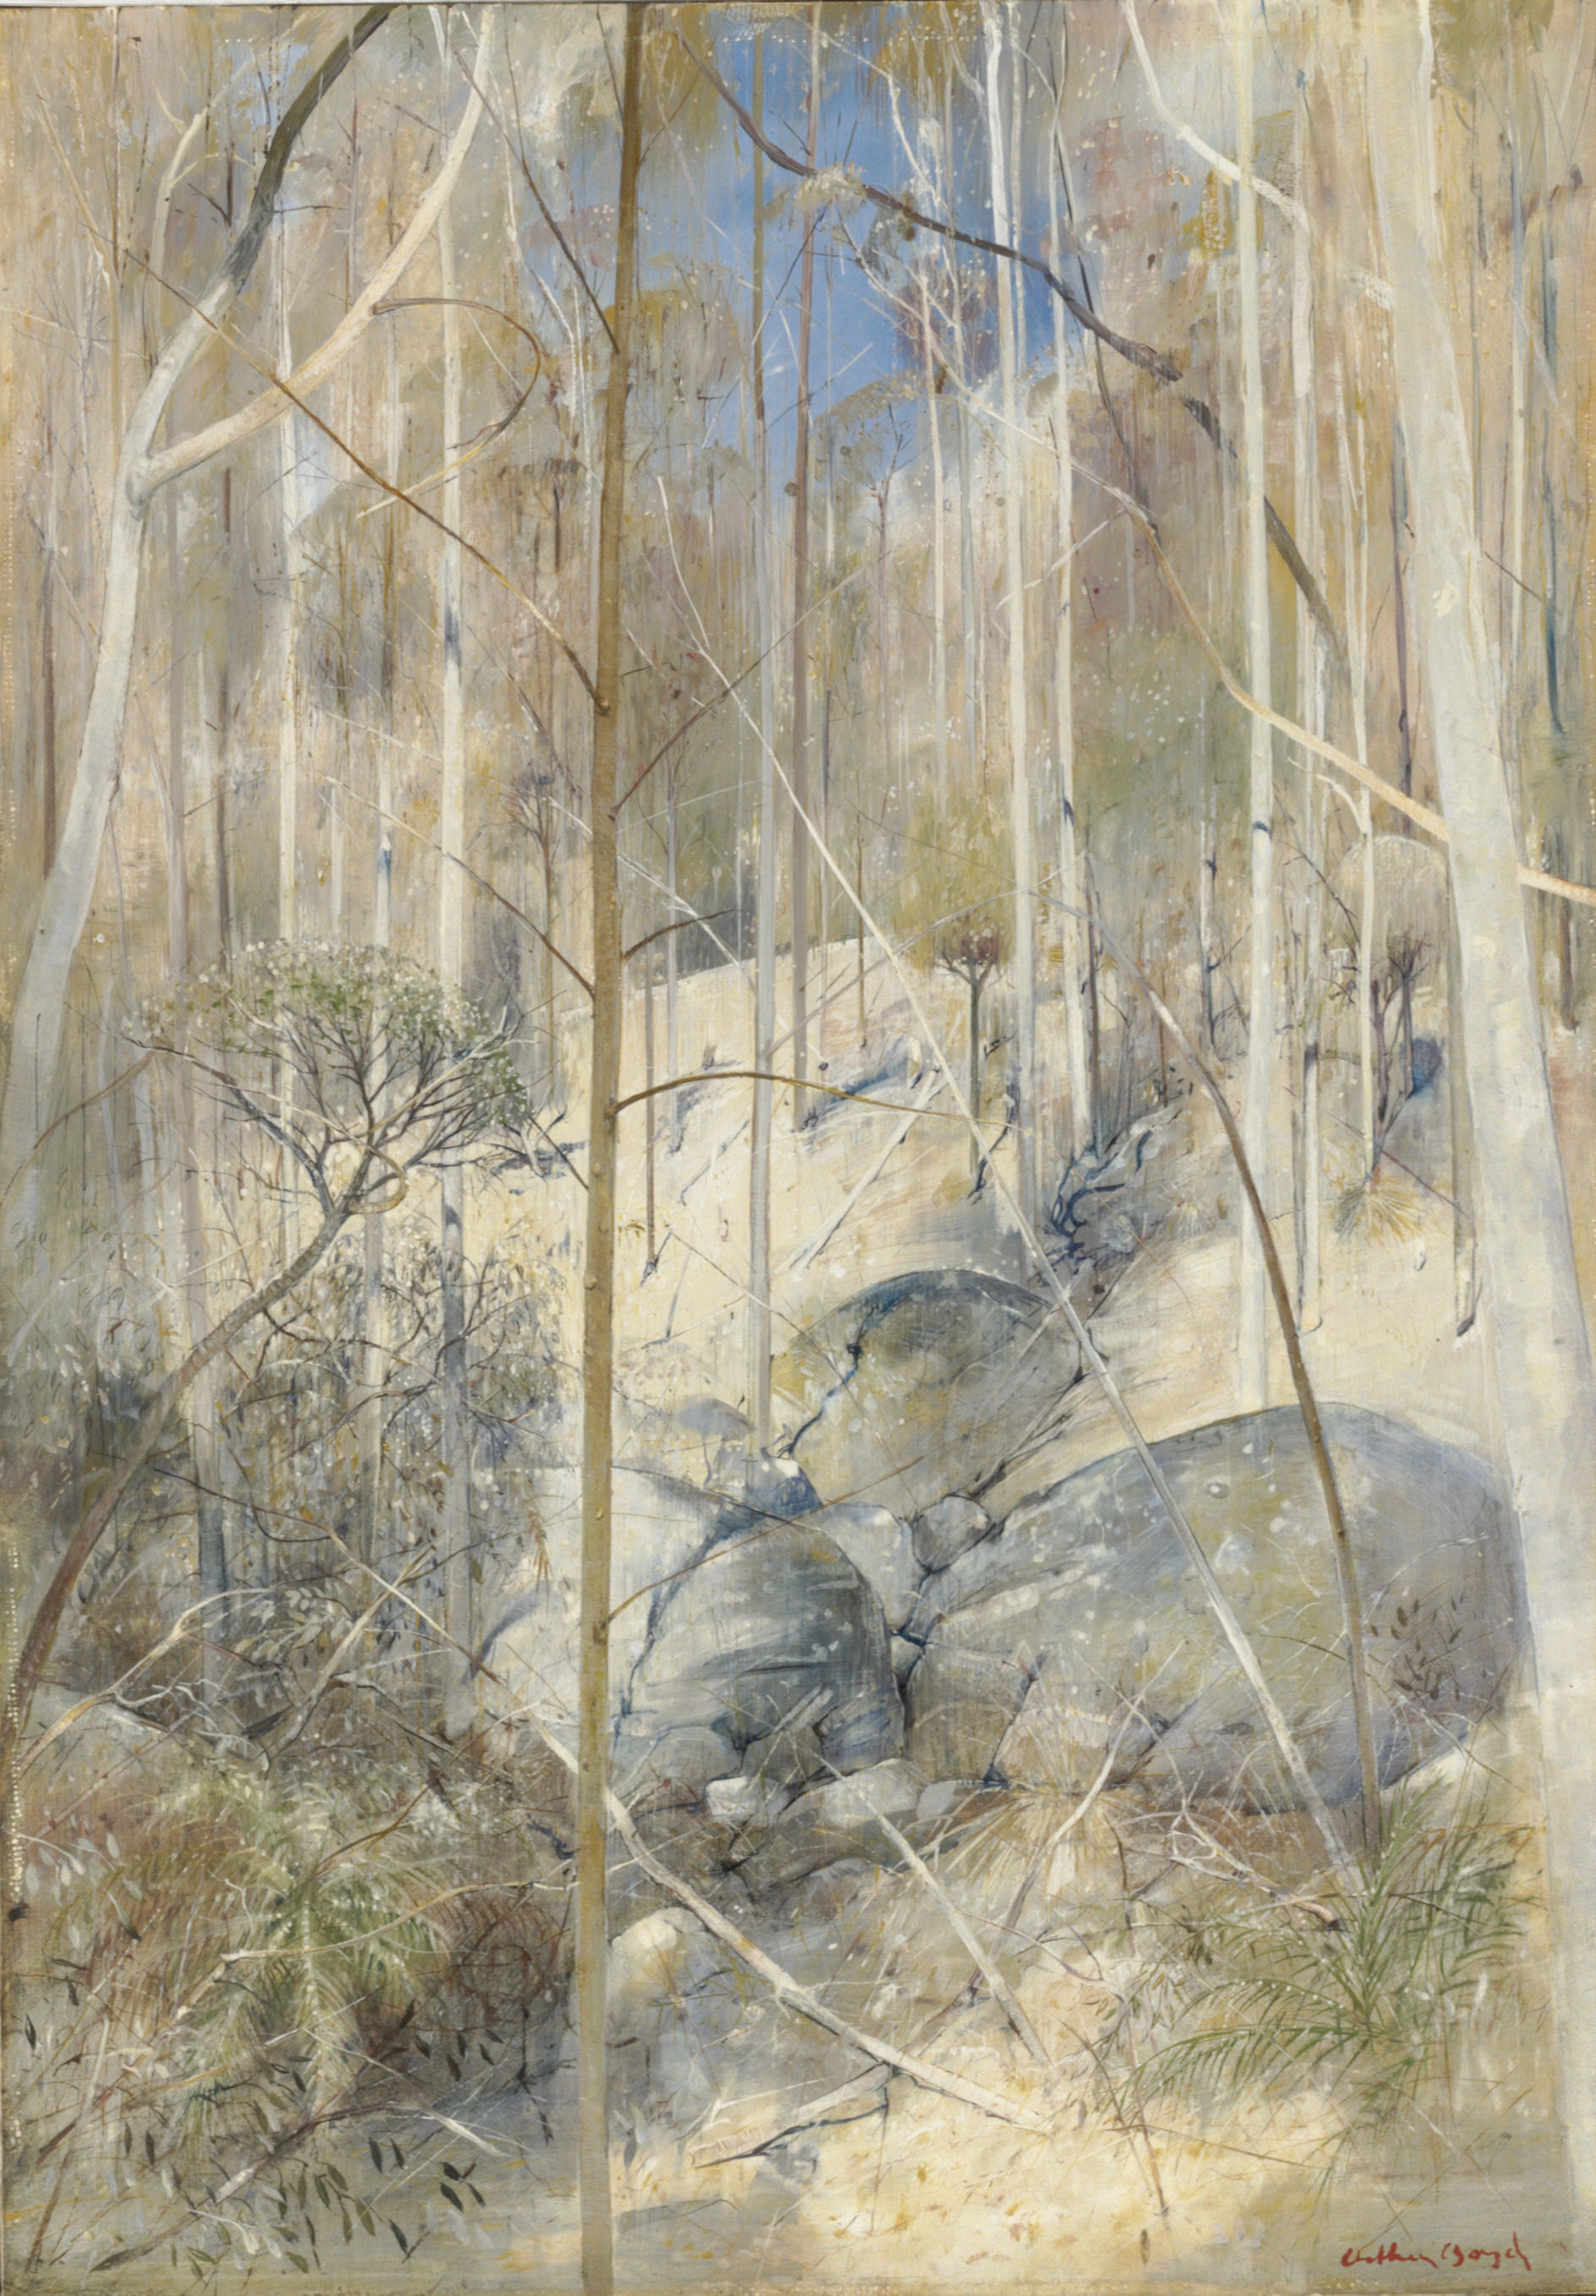 Forest with boulders (1976)